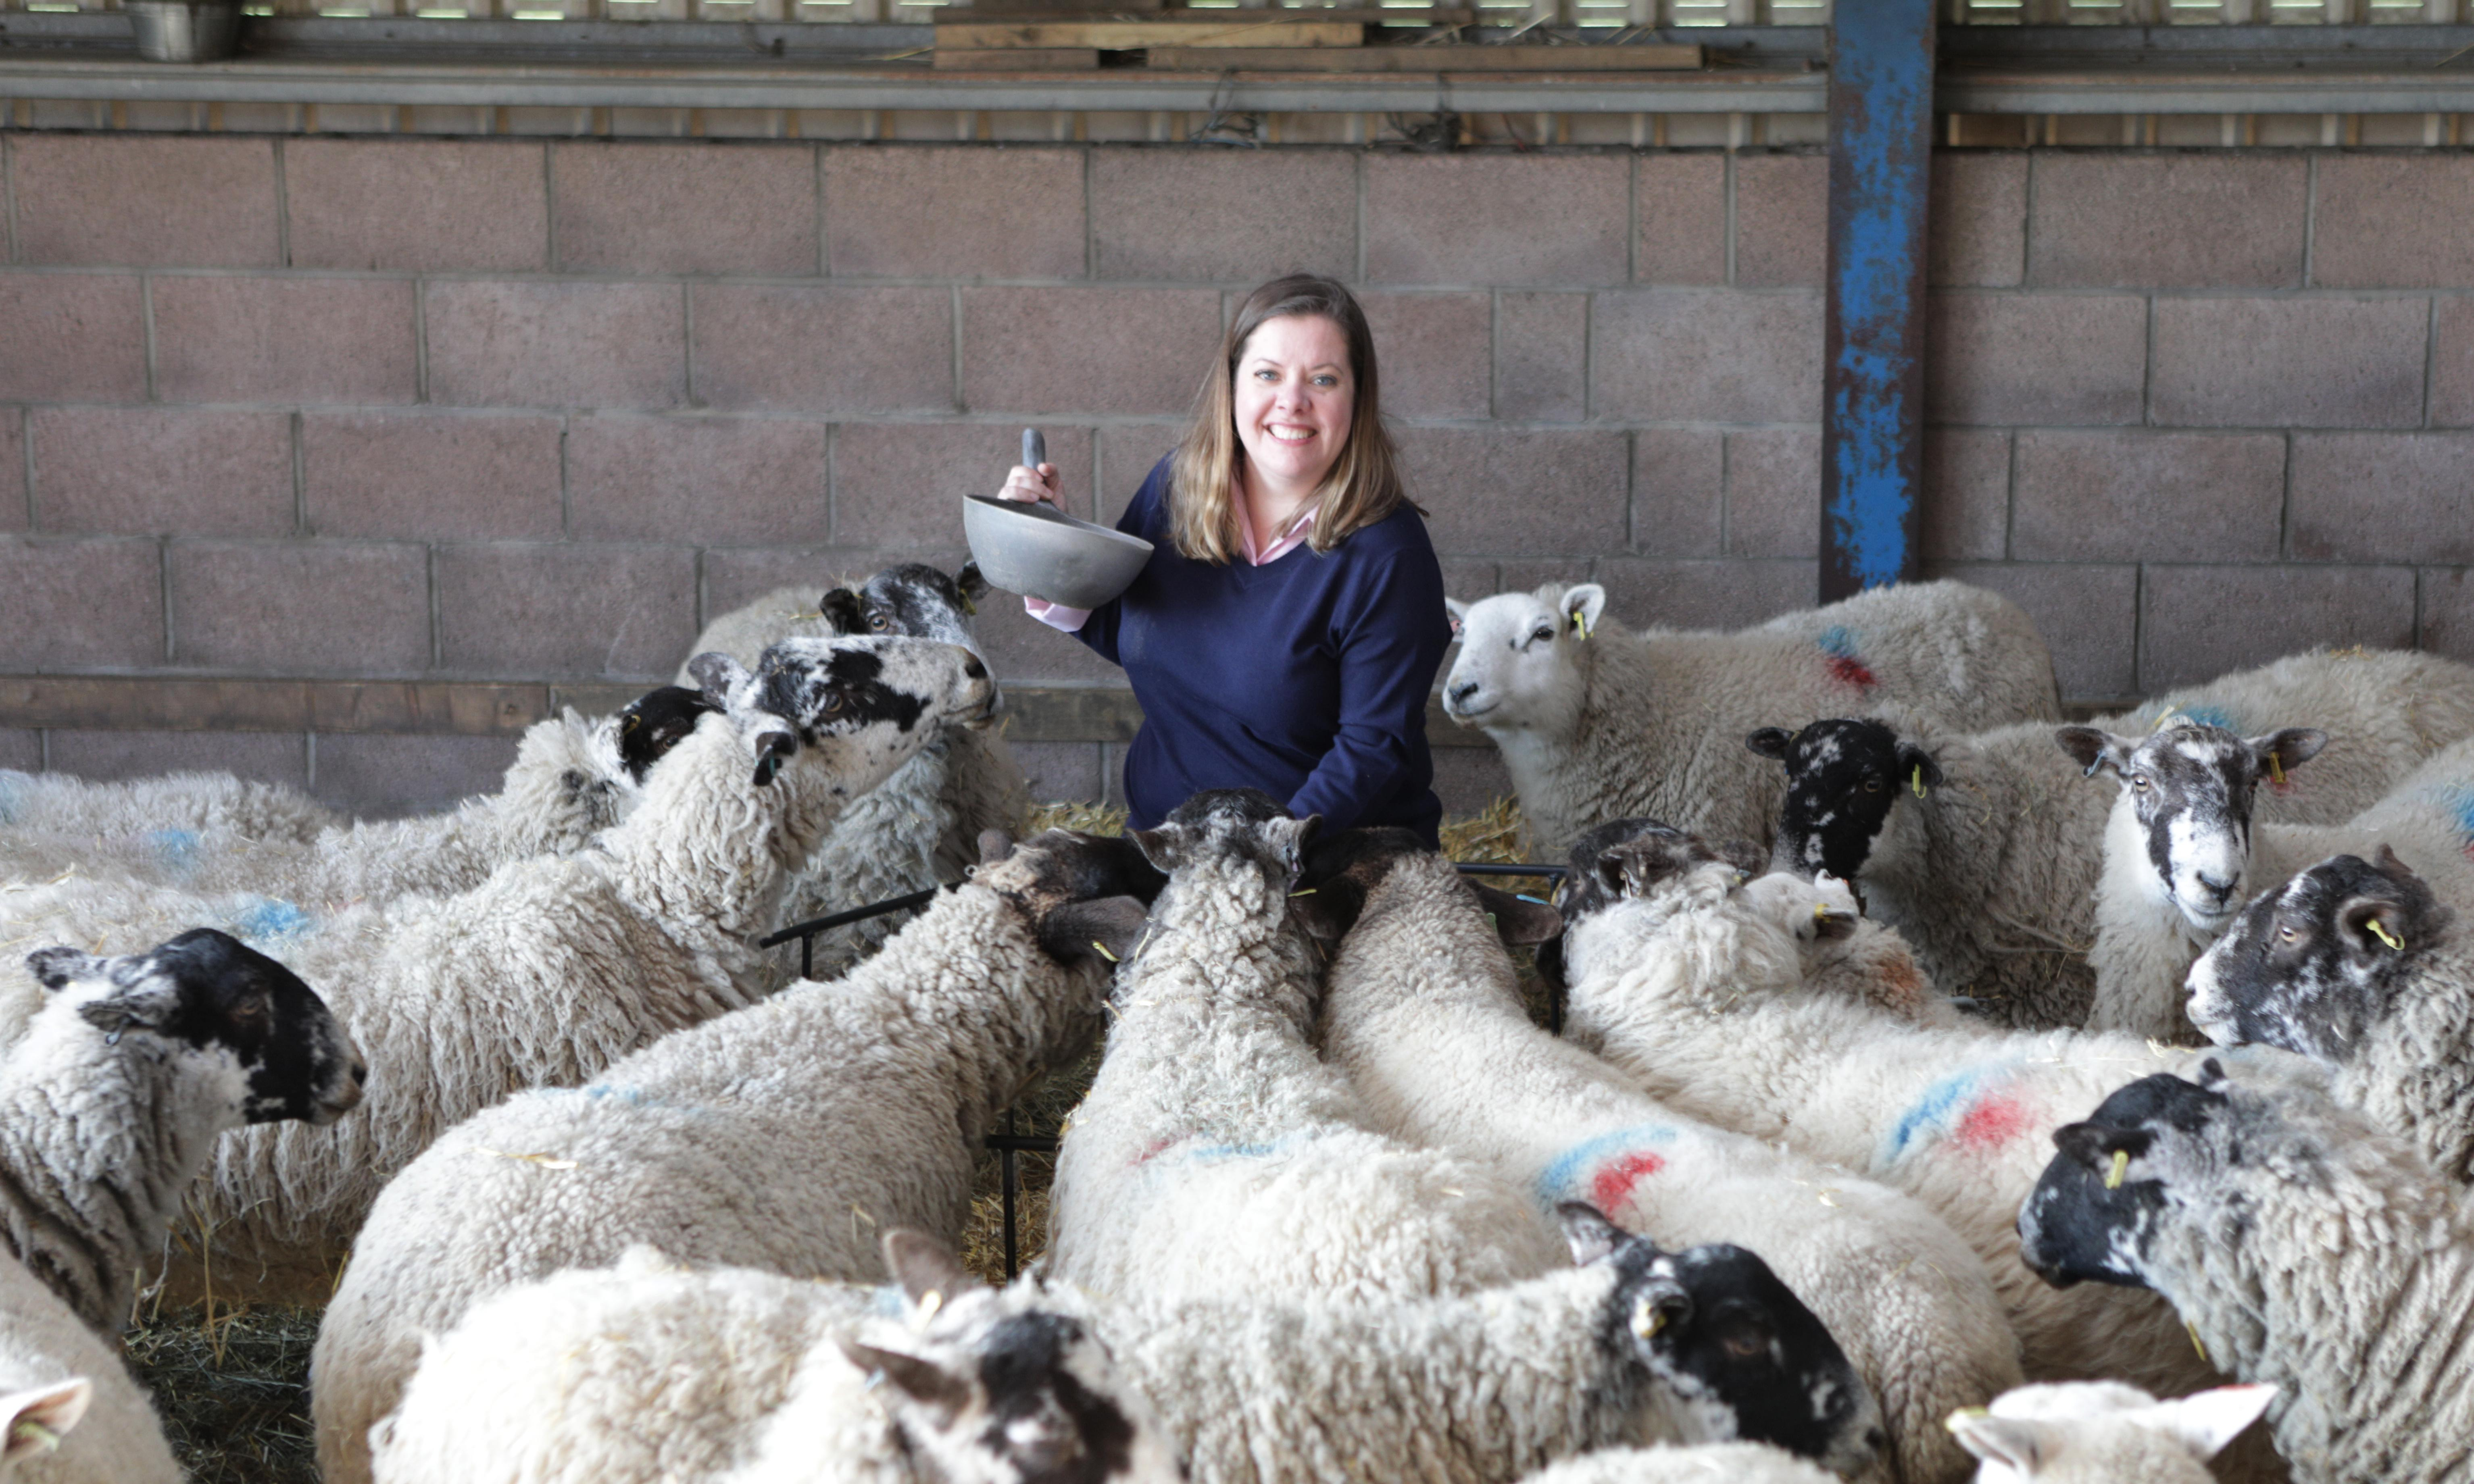 'I'm skint – I know why people buy cheap meat': the truth about being a farmer